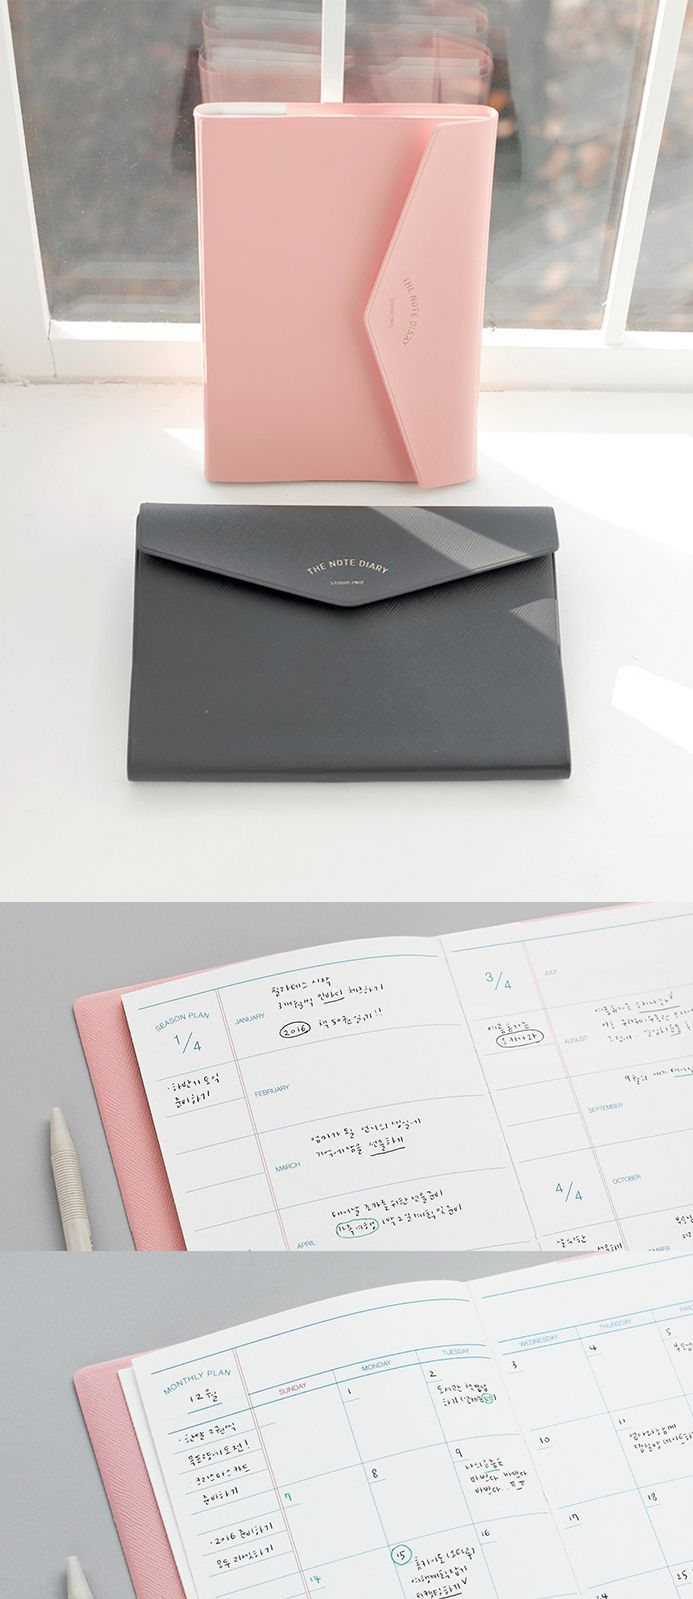 Simple, Classy and Super Useful! Ready to enjoy organized & productive life with The Note Diary Scheduler?